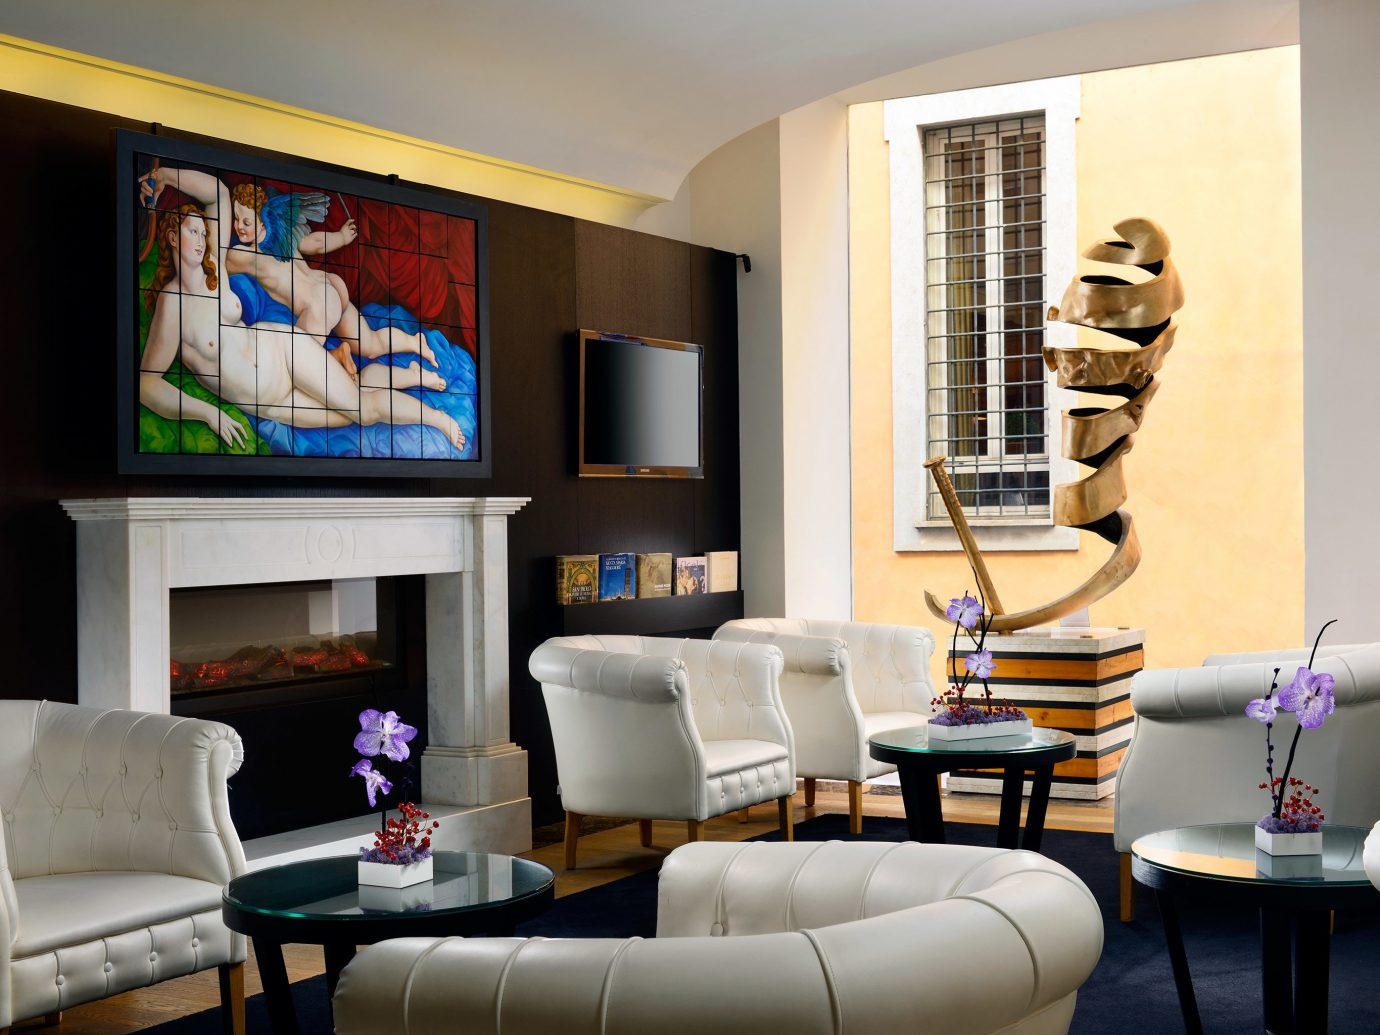 Boutique Boutique Hotels City Italy Lounge Luxury Travel Romantic Hotels Rome Living indoor wall sofa floor room living room property ceiling home interior design furniture real estate Design condominium window covering estate leather